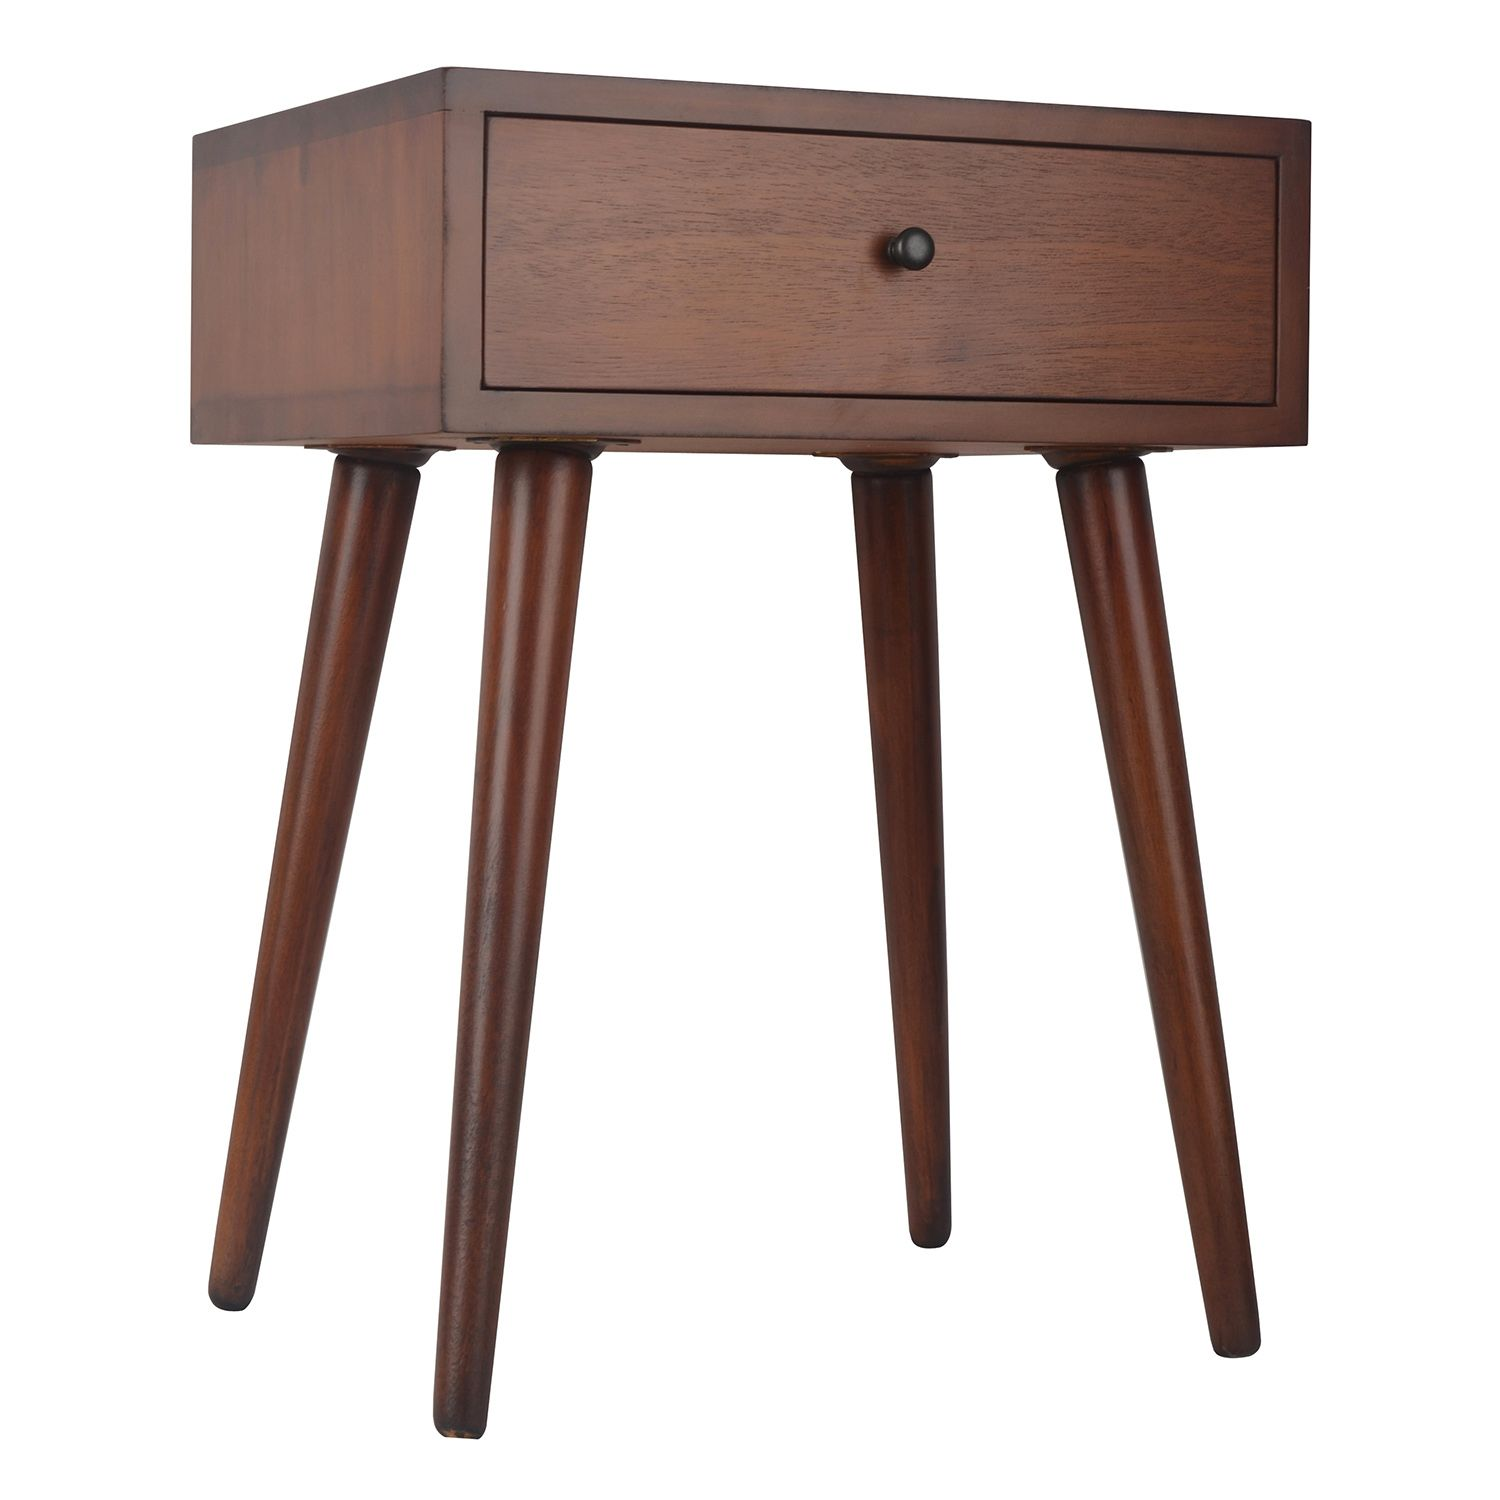 Decor Therapy Mid Century Modern End Table